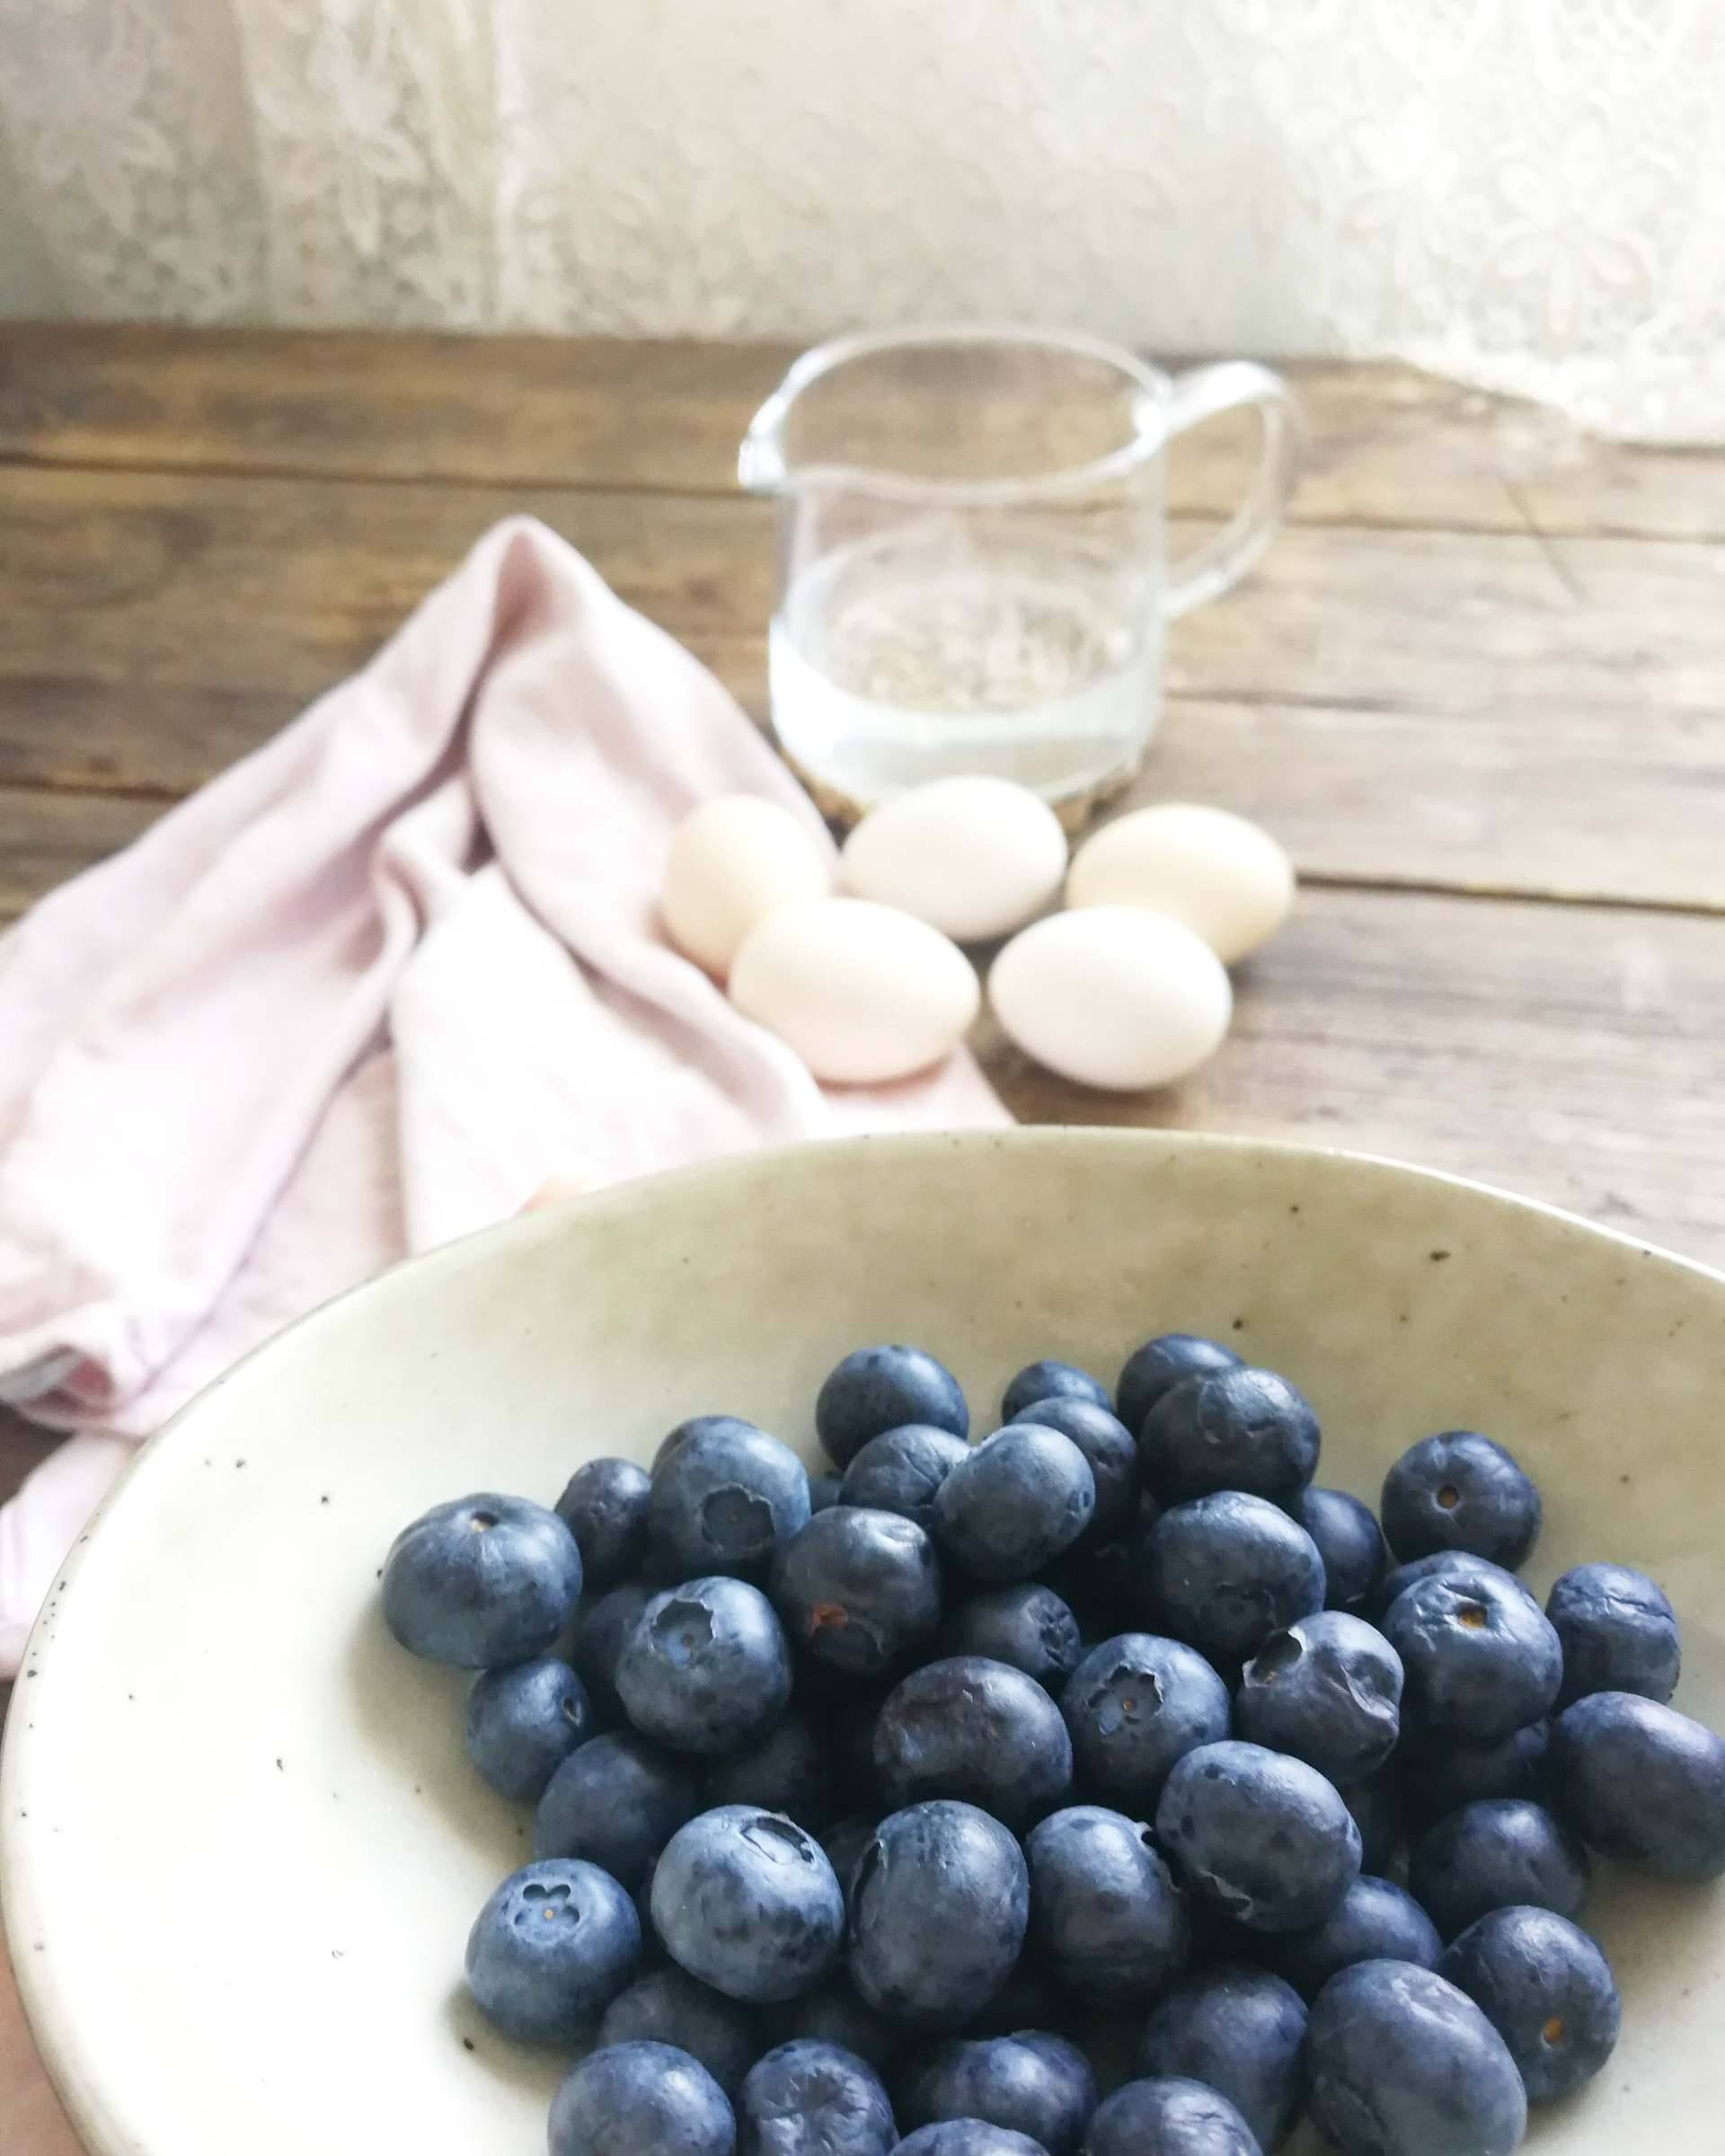 dyeing easter eggs naturally with blueberries